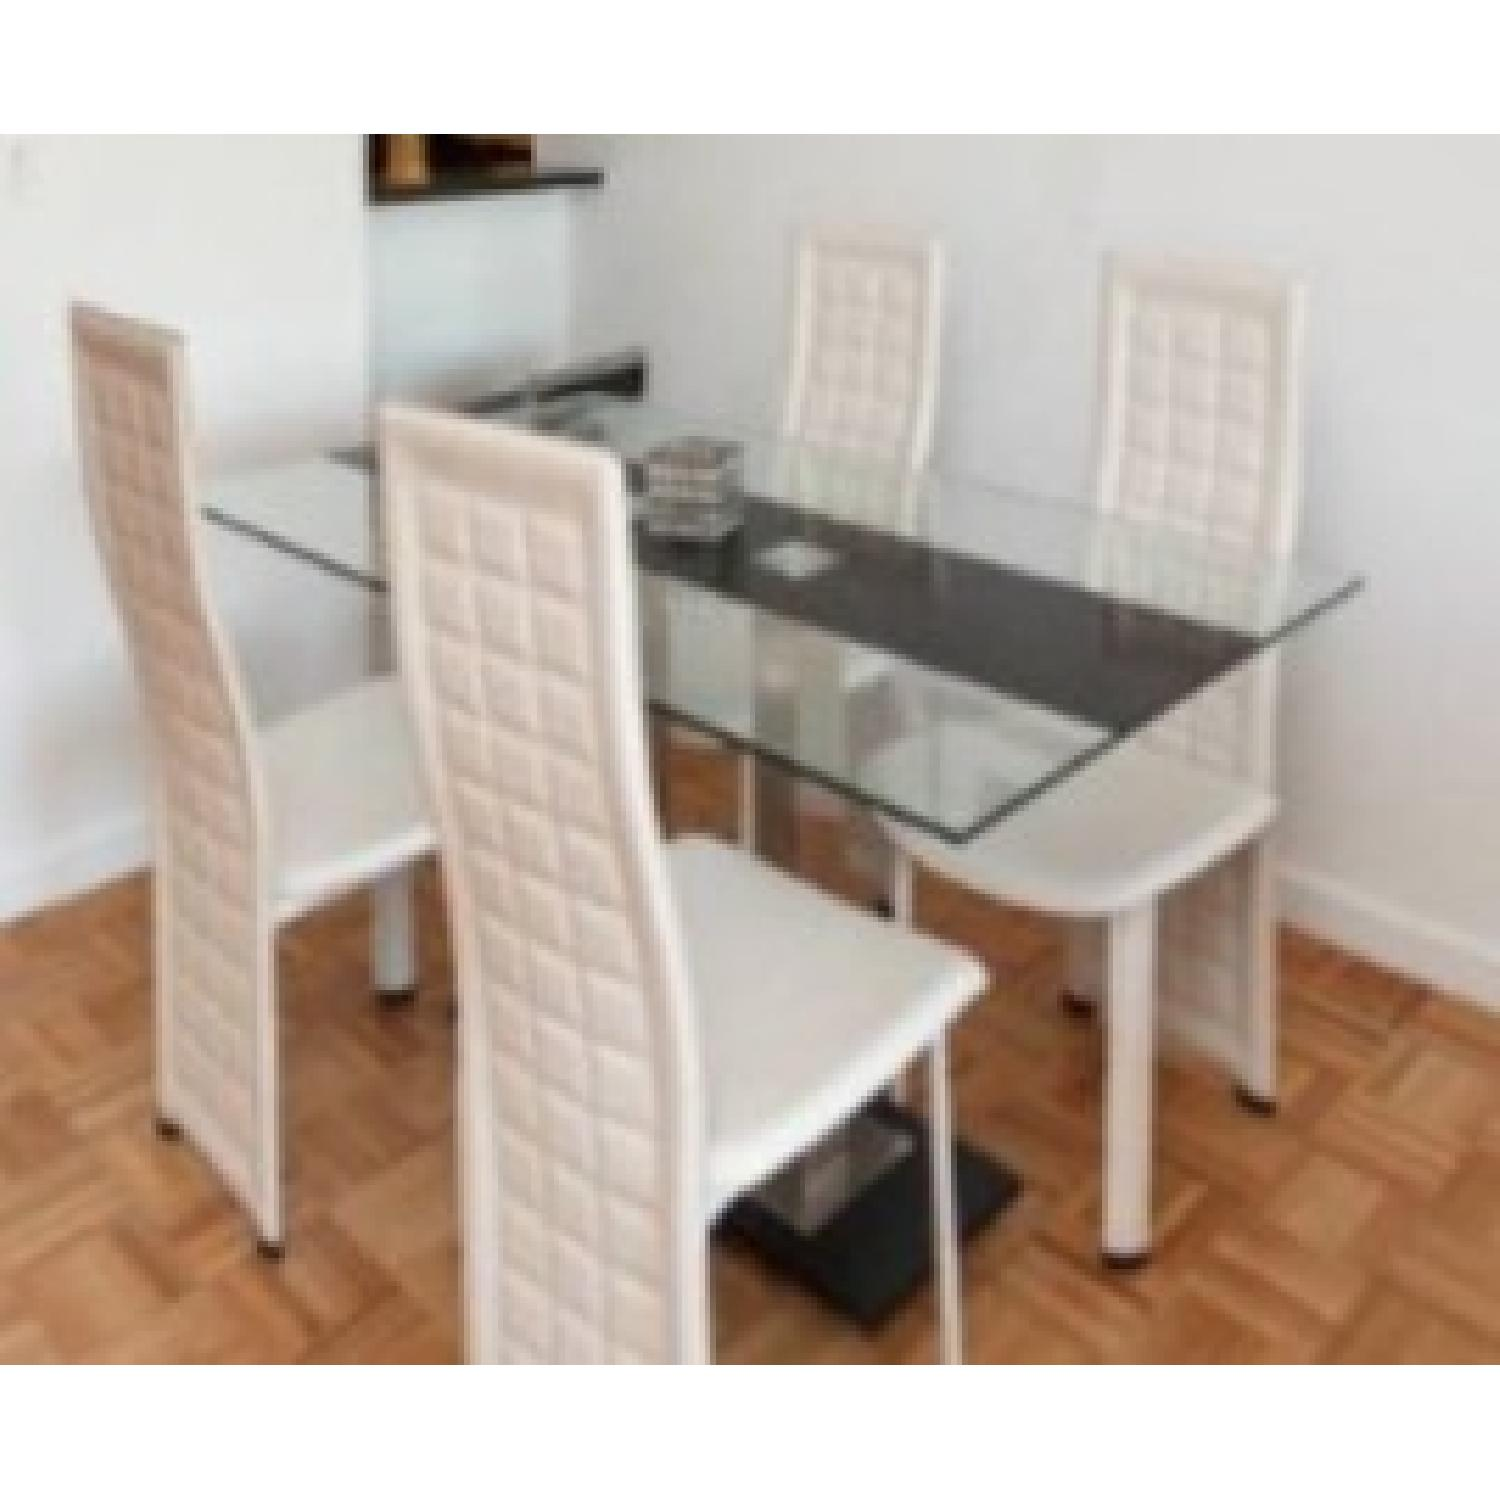 Linea Italia Glass Top Dining Table w 4 Chairs AptDeco : 1500 1500 frame 0 from www.aptdeco.com size 1500 x 1500 jpeg 125kB